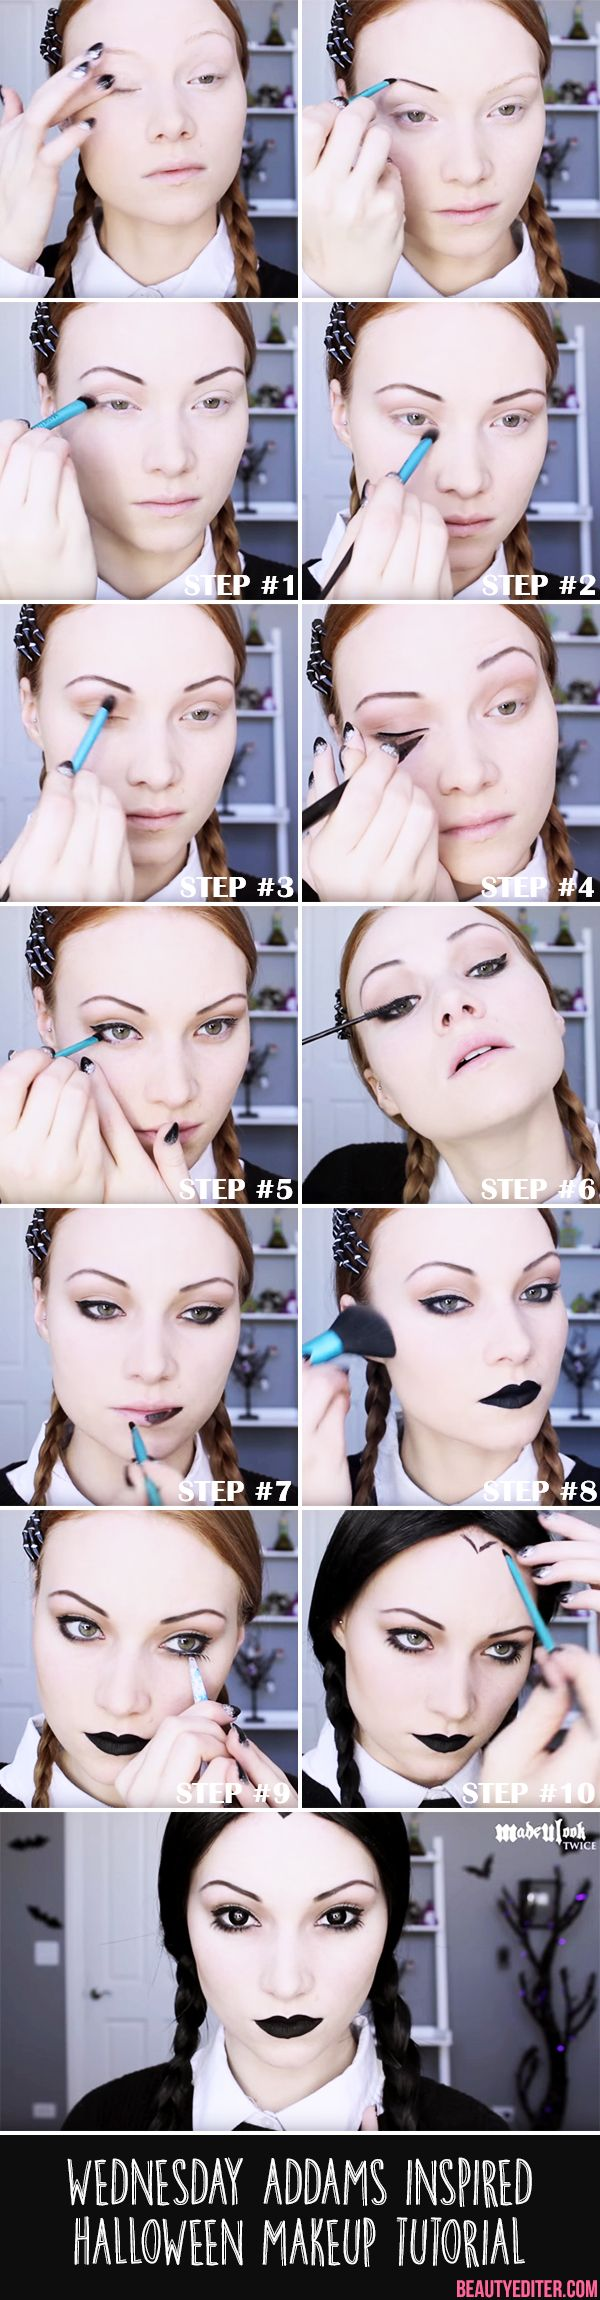 Wednesday Addams Halloween Makeup                                                                                                                                                                                 Más